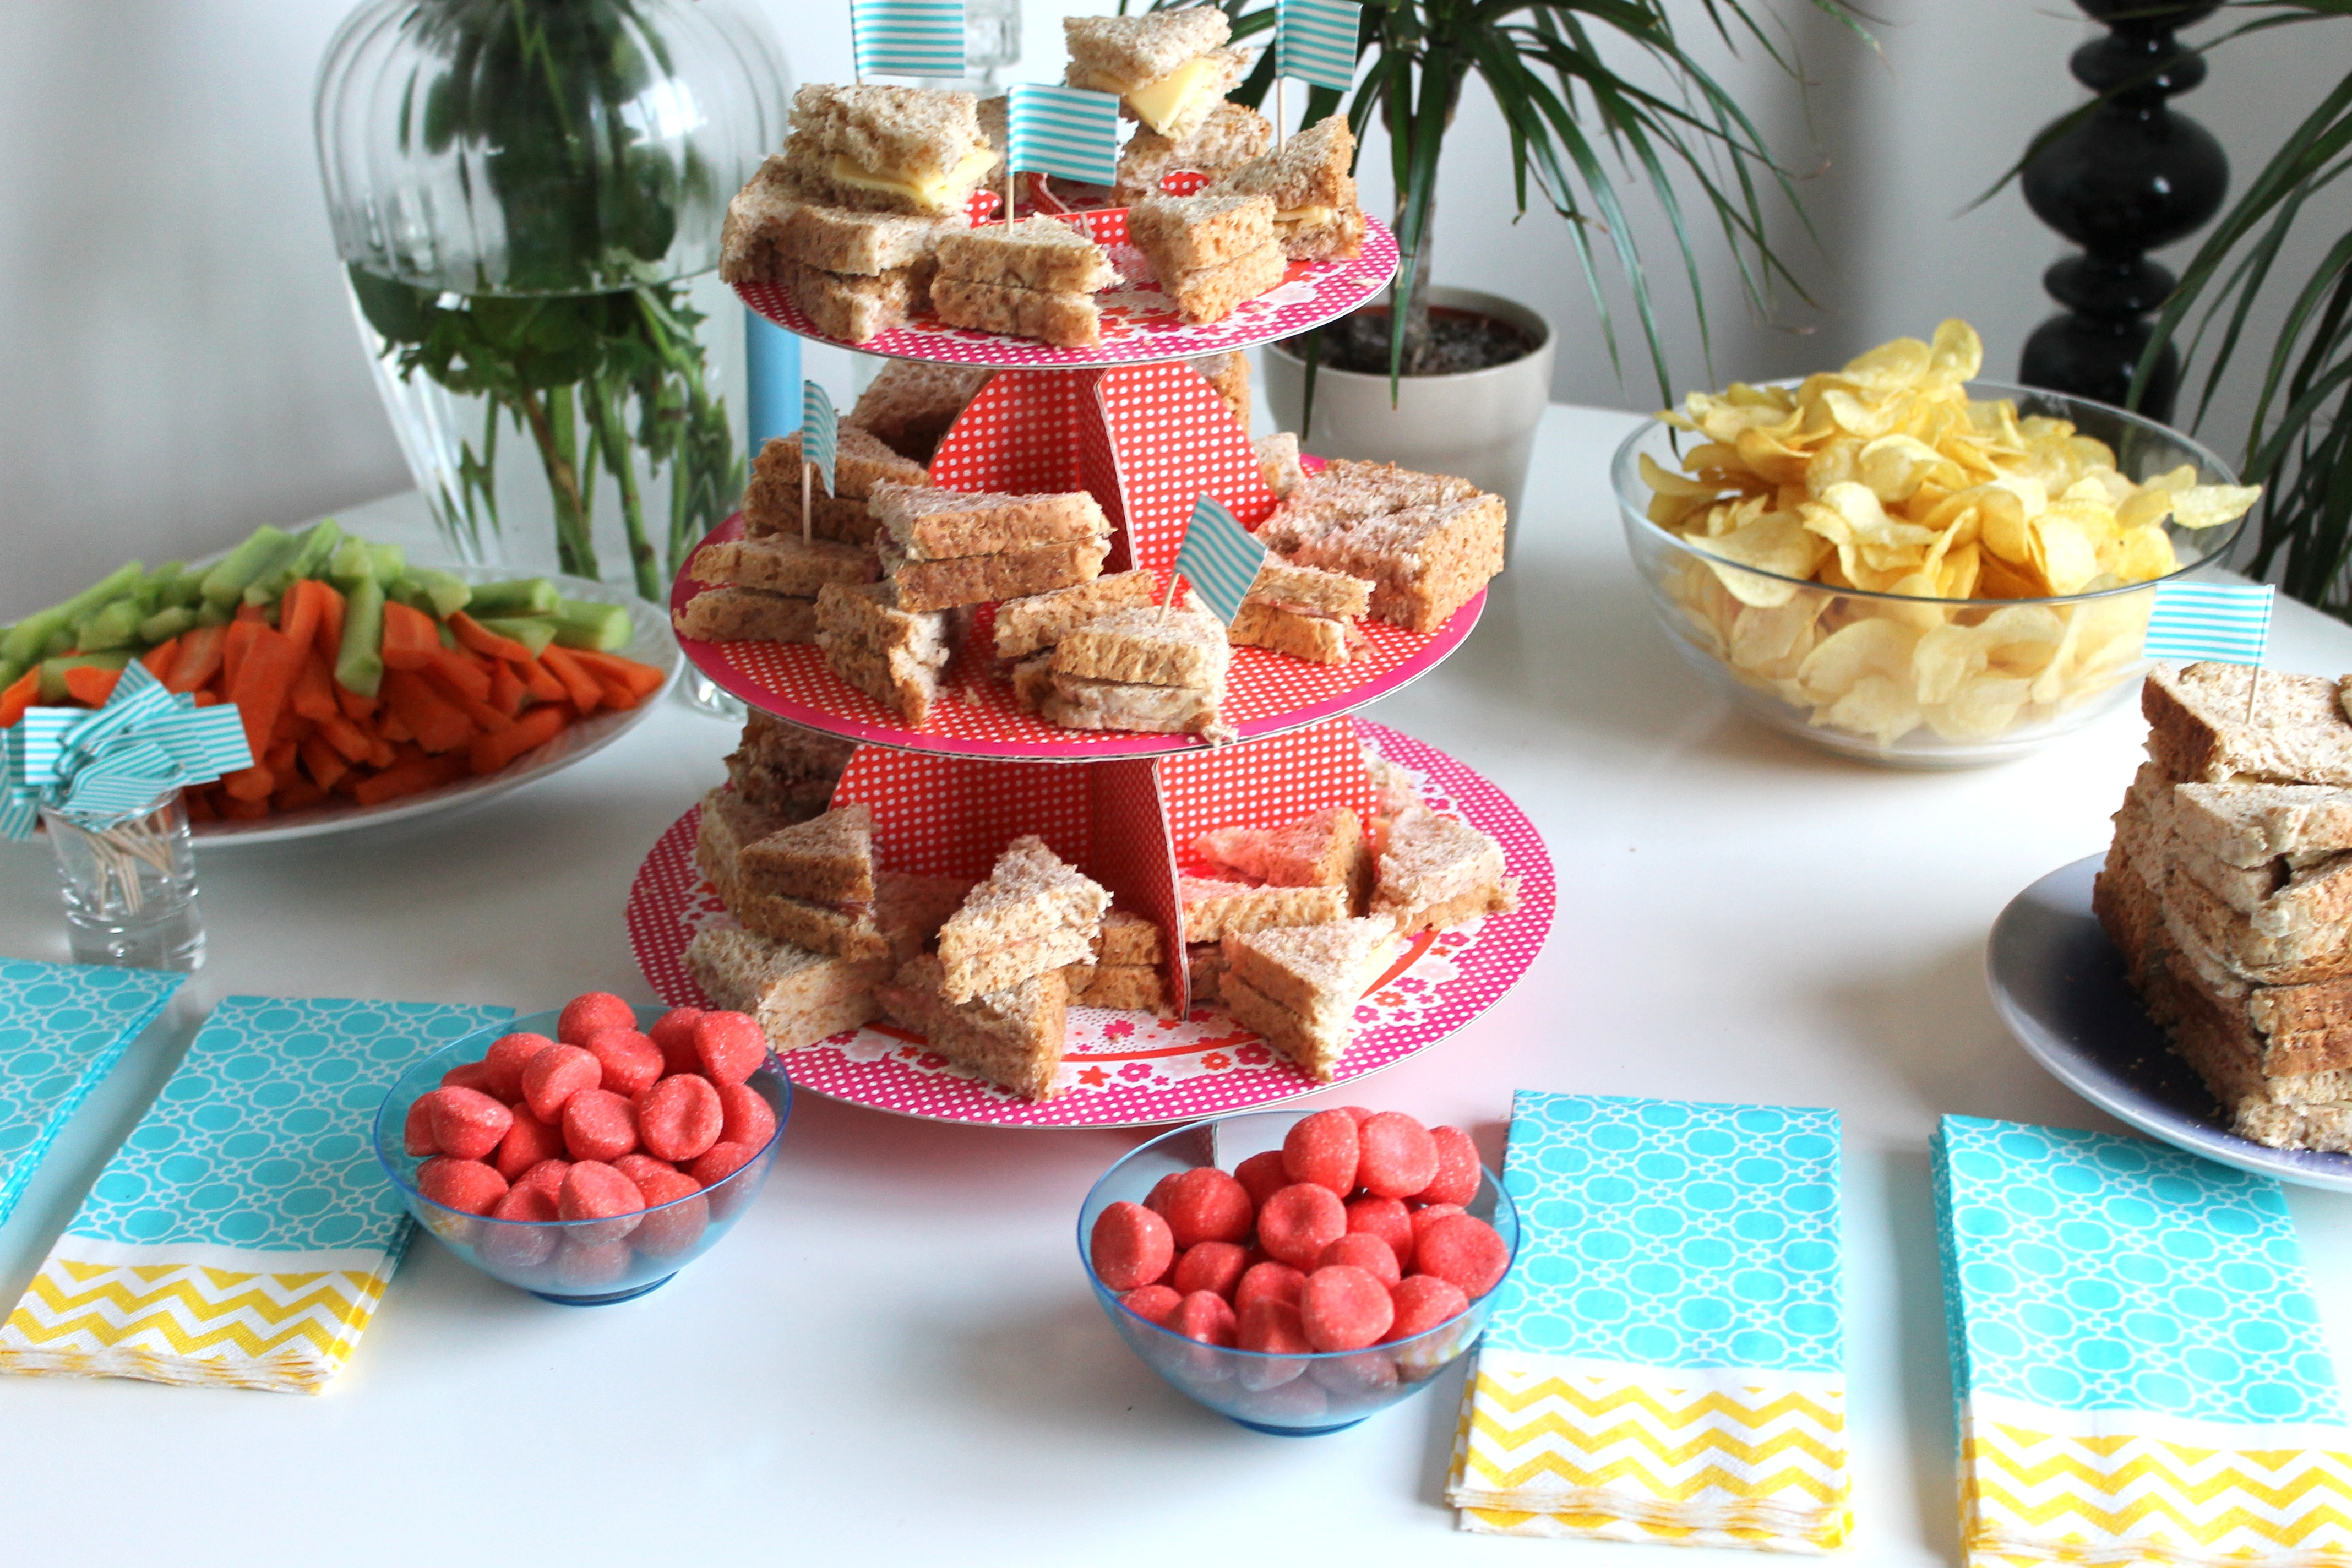 D coration un joli buffet d anniversaire rise and shine - Decoration d anniversaire ...